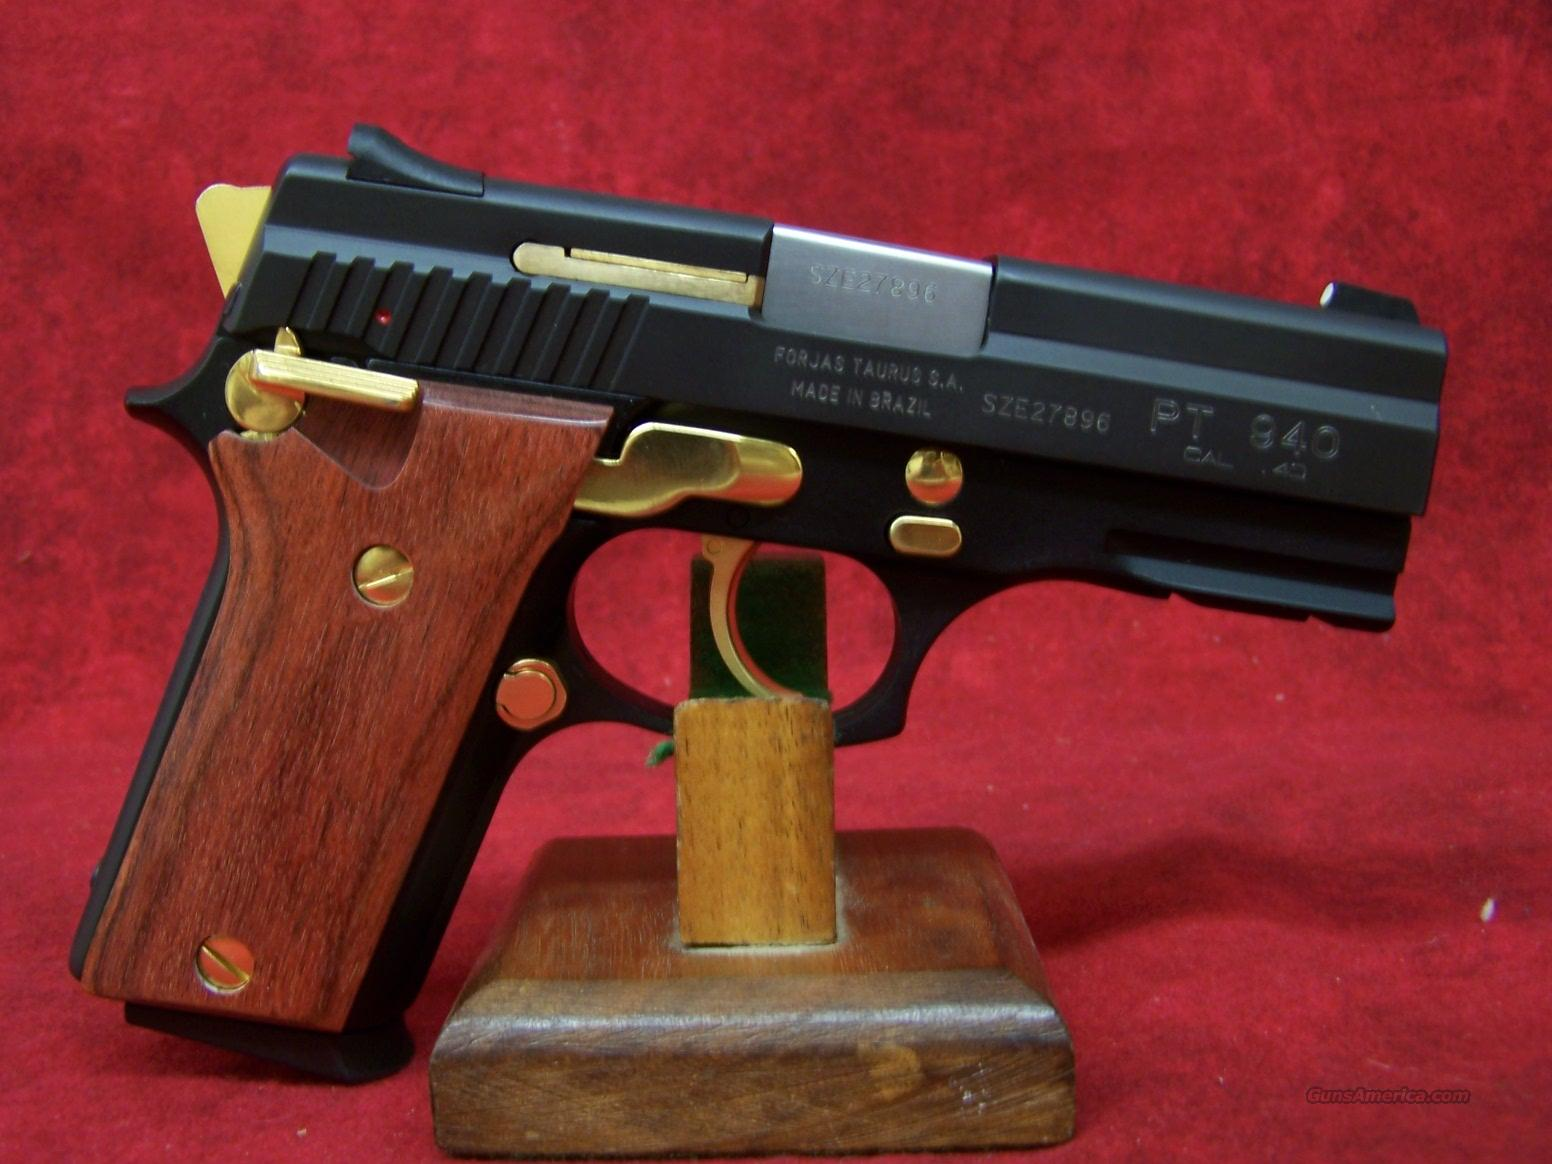 Taurus PT940 with Gold Trim and Rosewood Grips .40 S&W  Guns > Pistols > Taurus Pistols/Revolvers > Pistols > Steel Frame